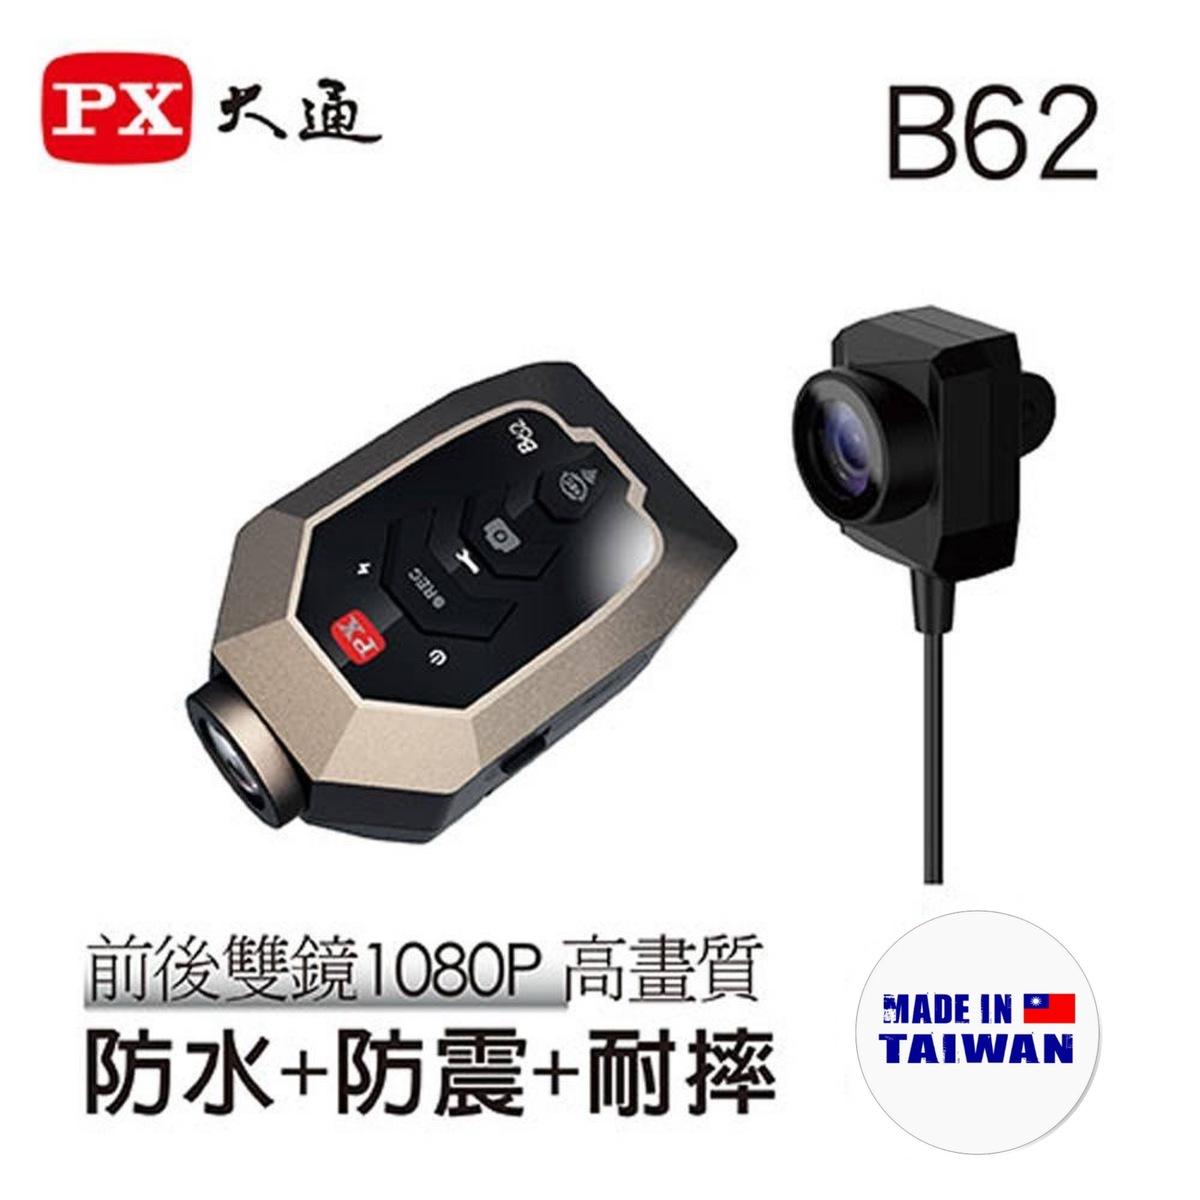 Full HD 1080P Motorcycle Bicycle Dashcam - B62